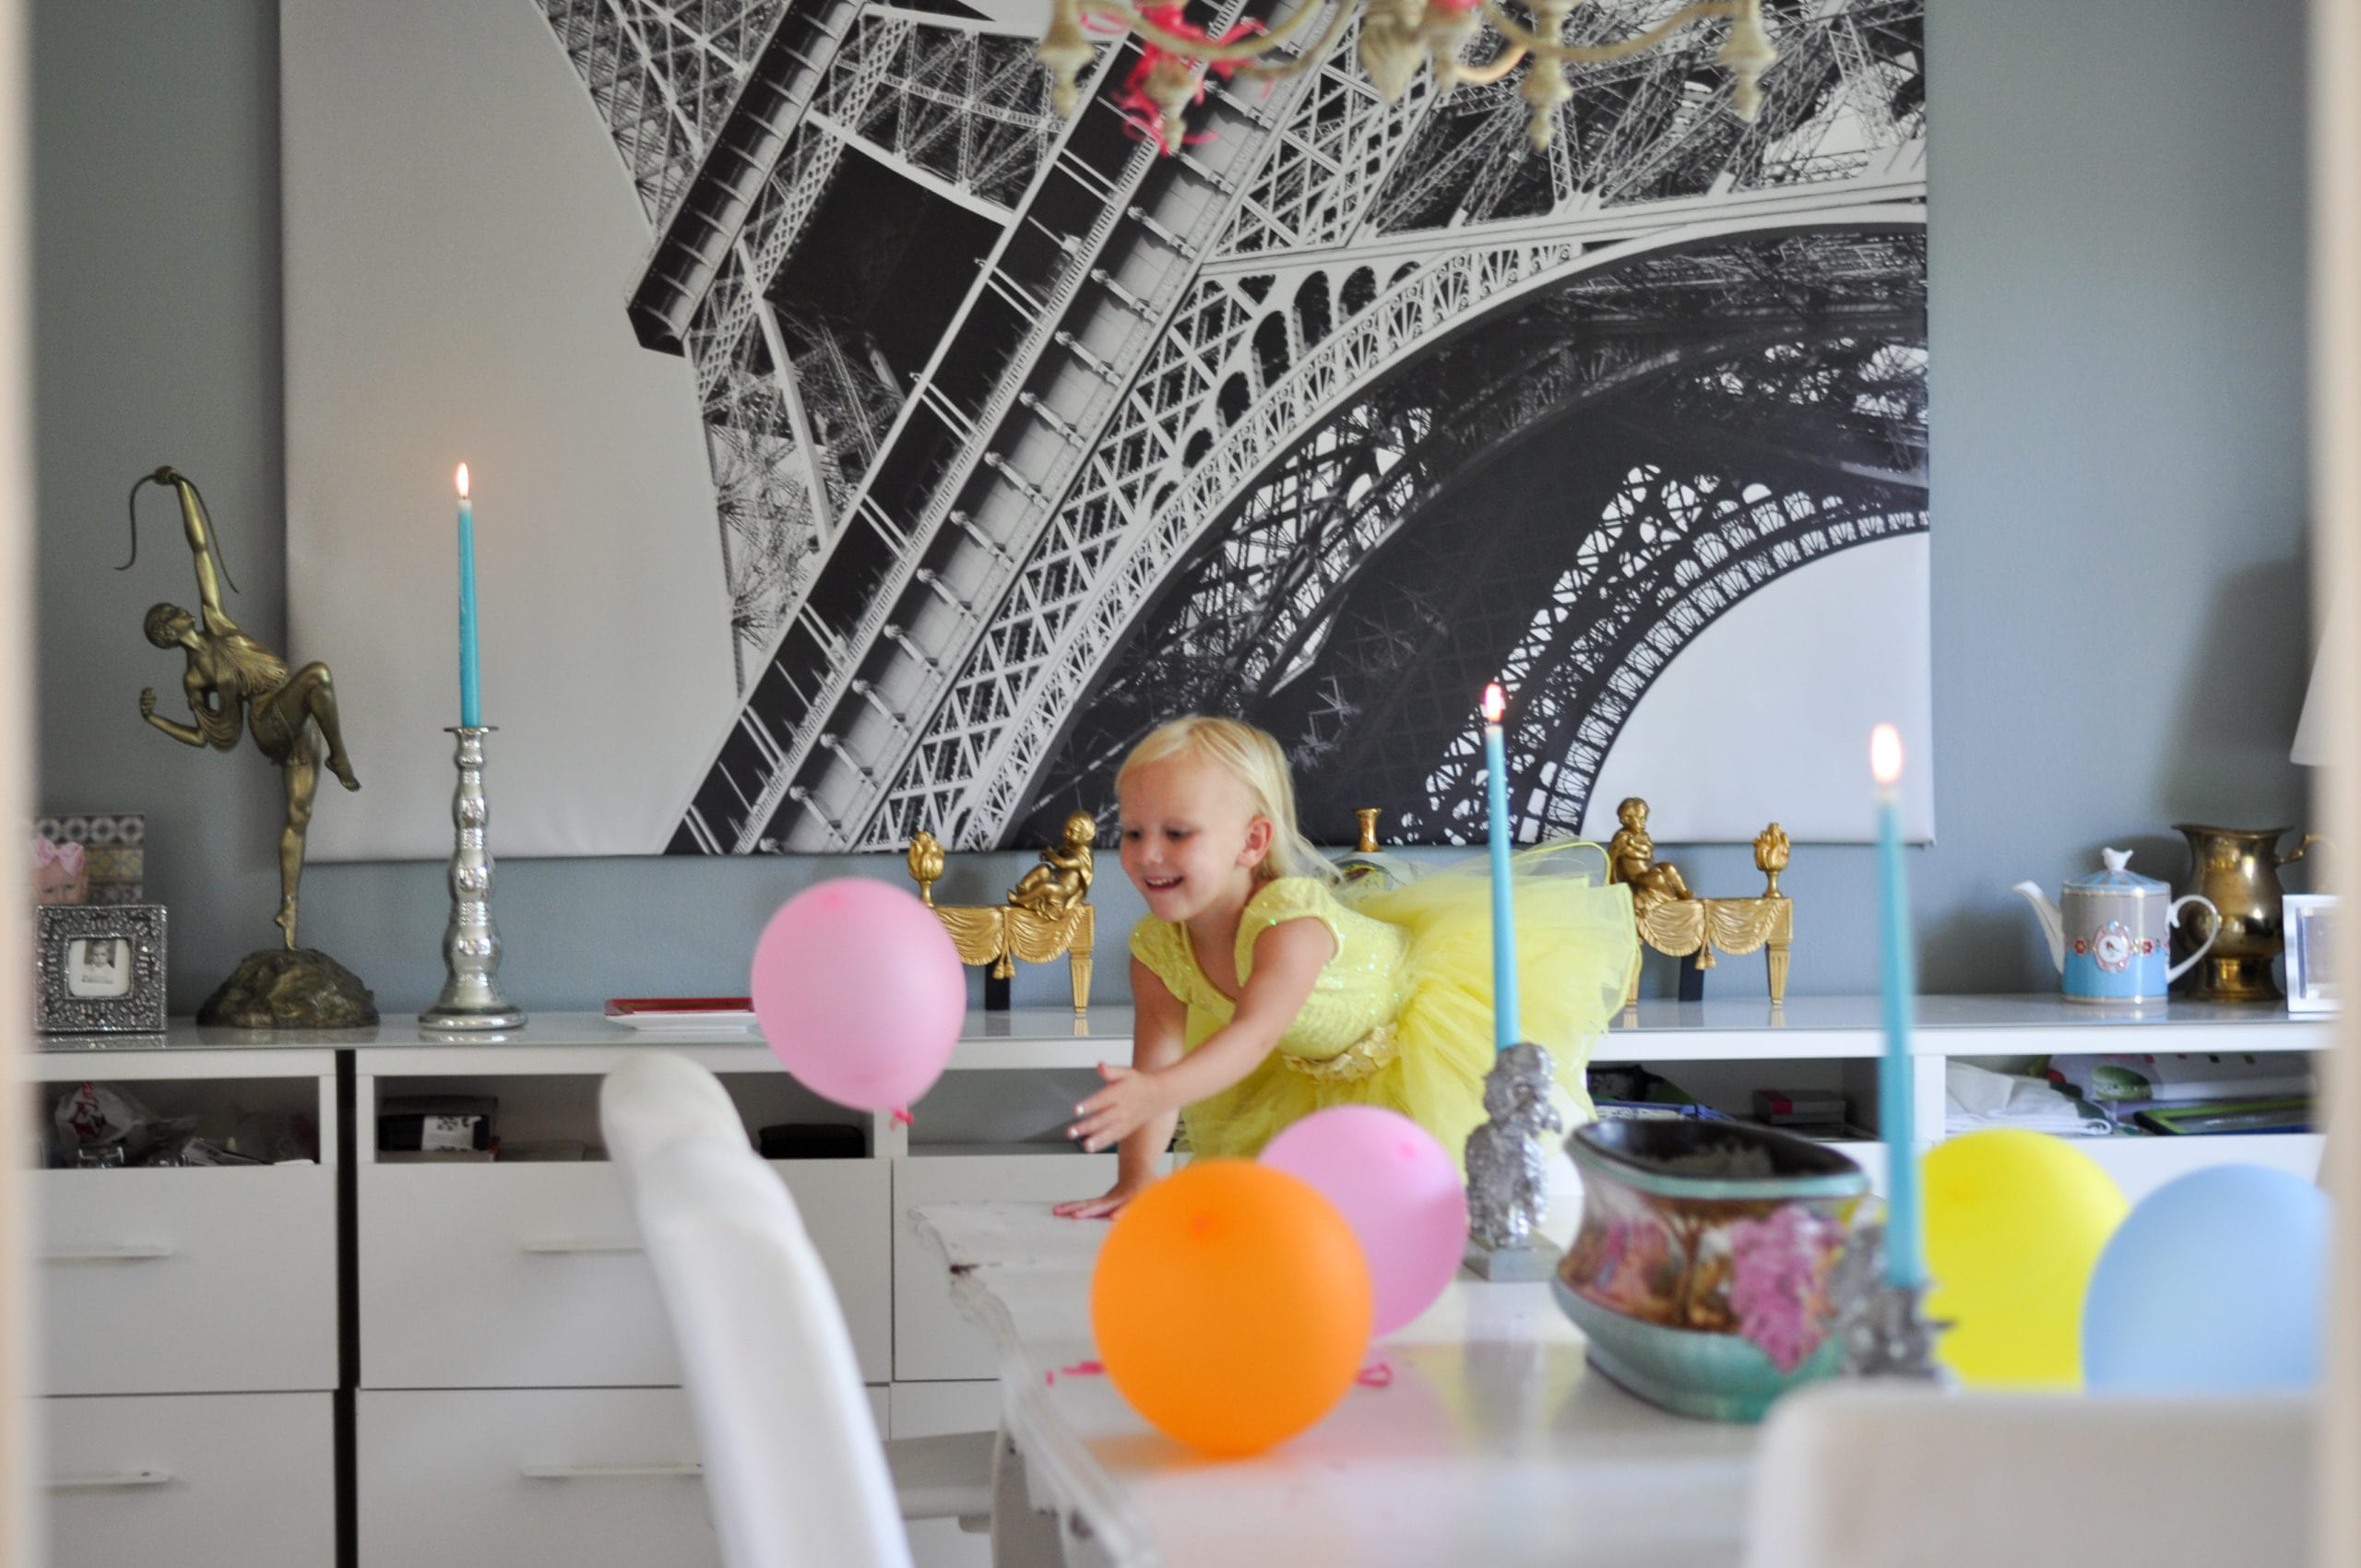 Little girl playing with art and balloons